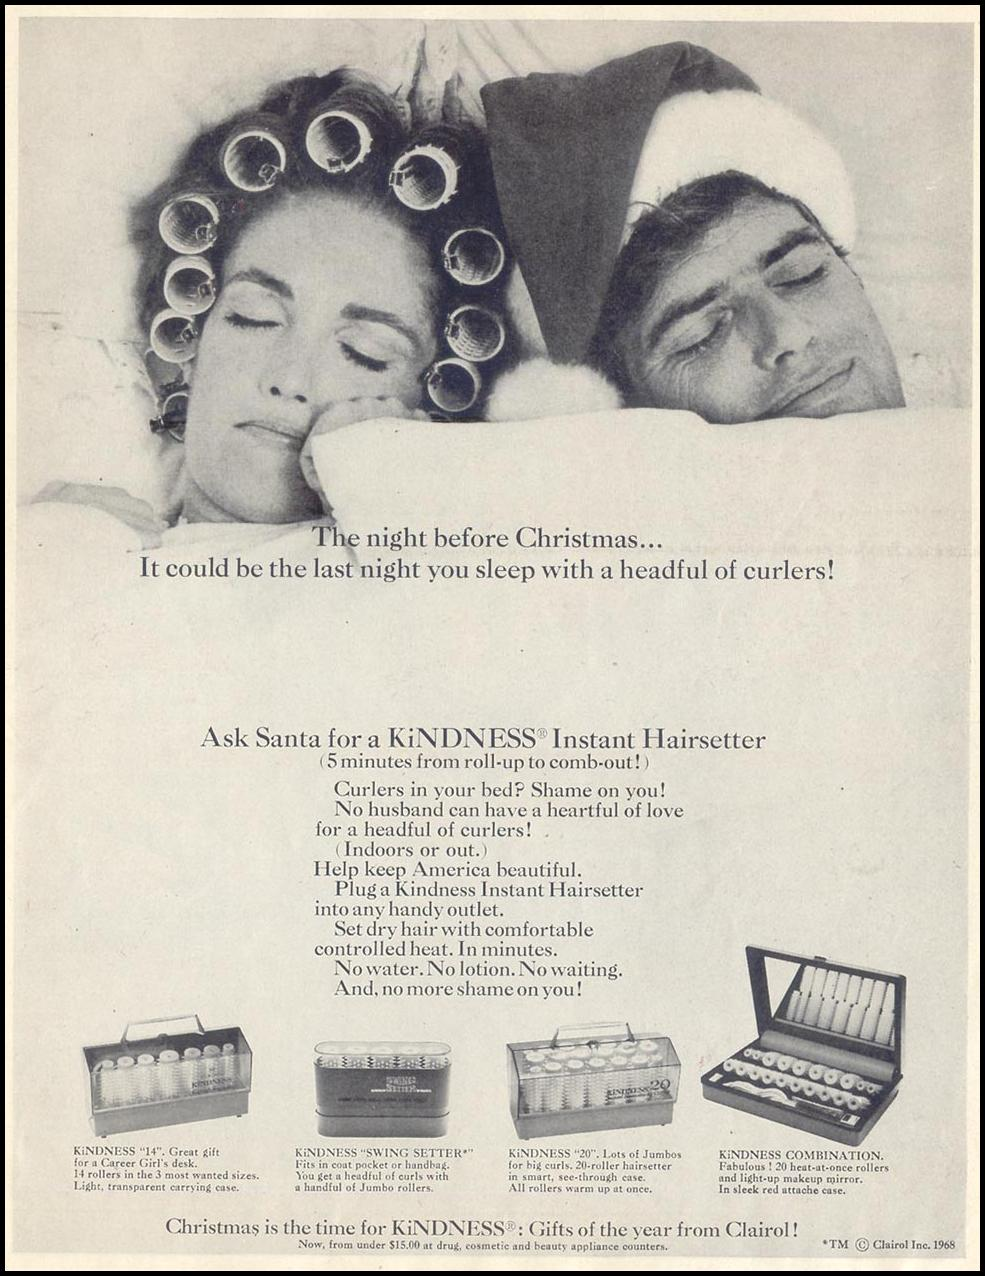 KINDNESS INSTANT HAIRSETTER SATURDAY EVENING POST 12/28/1968 p. 1